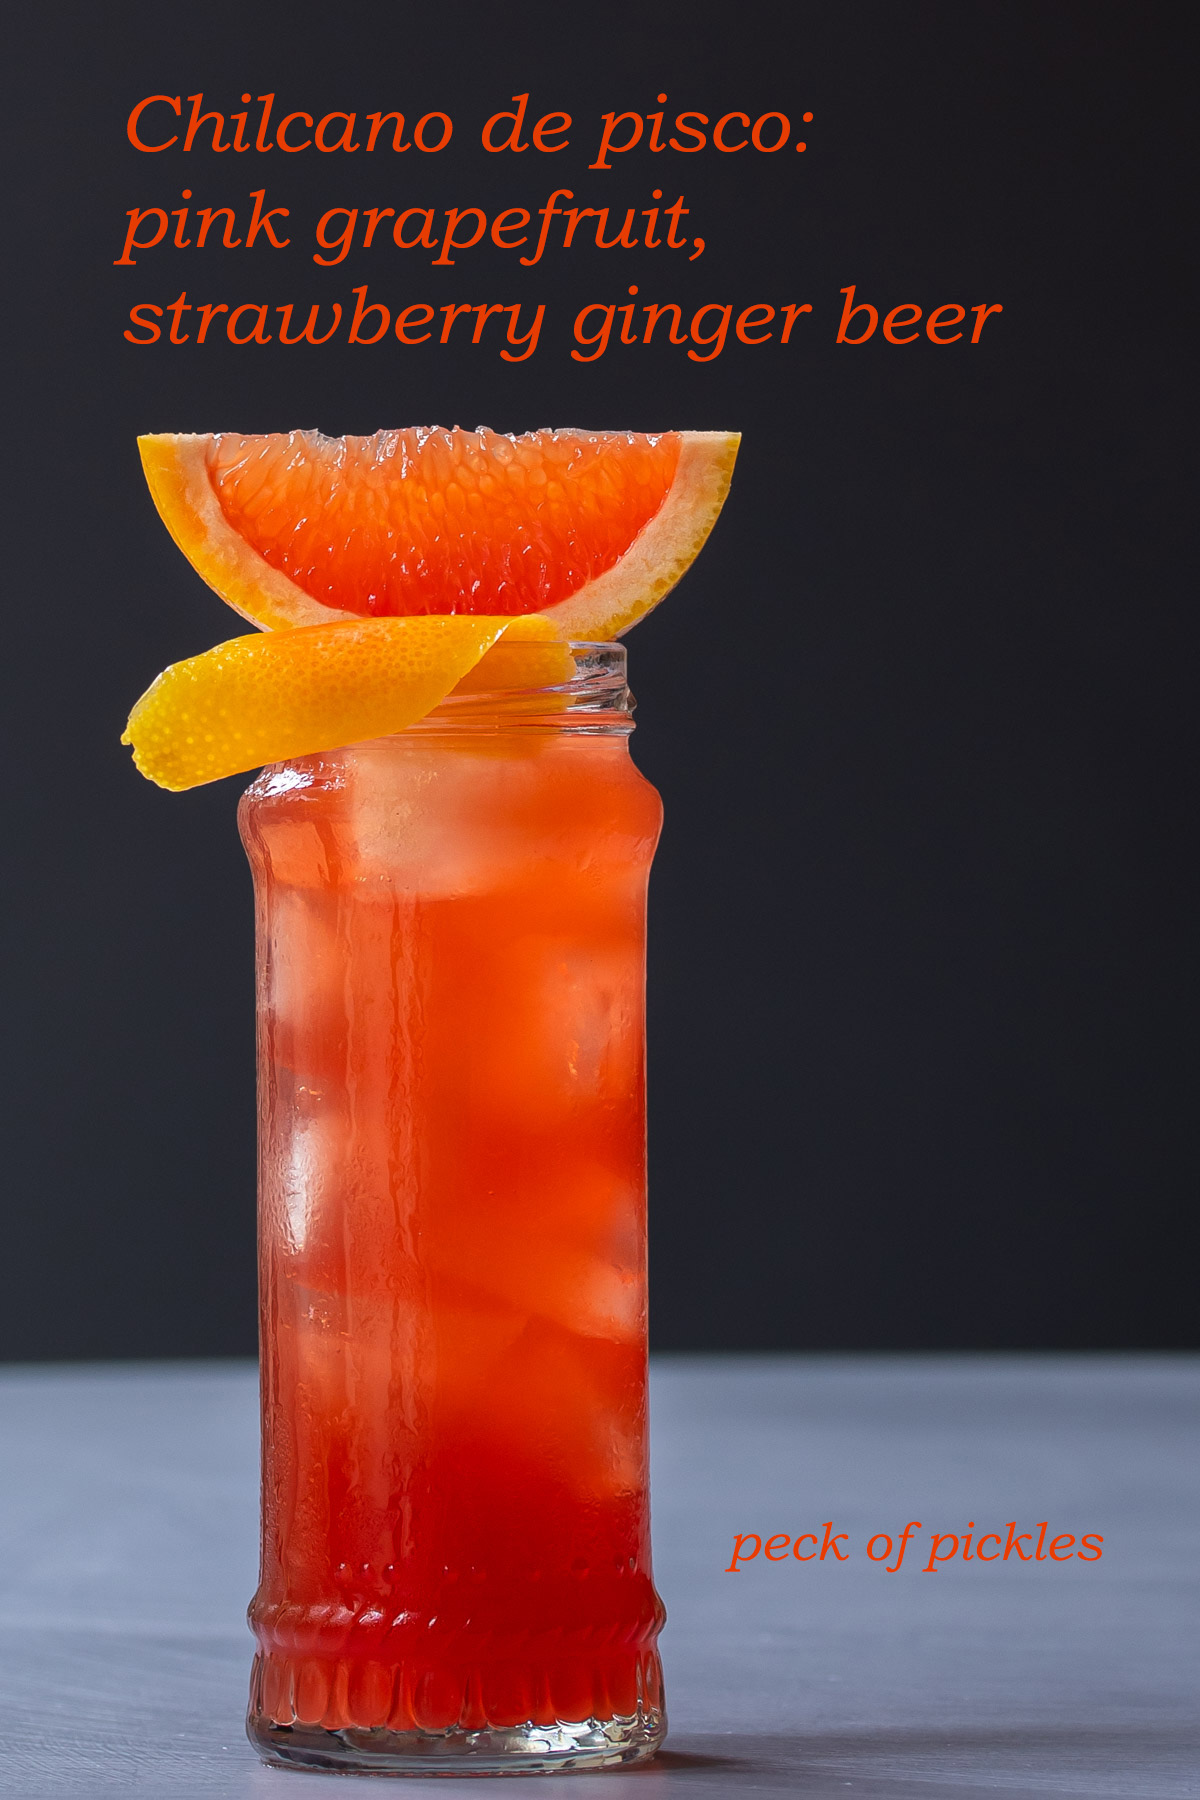 Strawberry ginger beer Chilcano de pisco cocktail